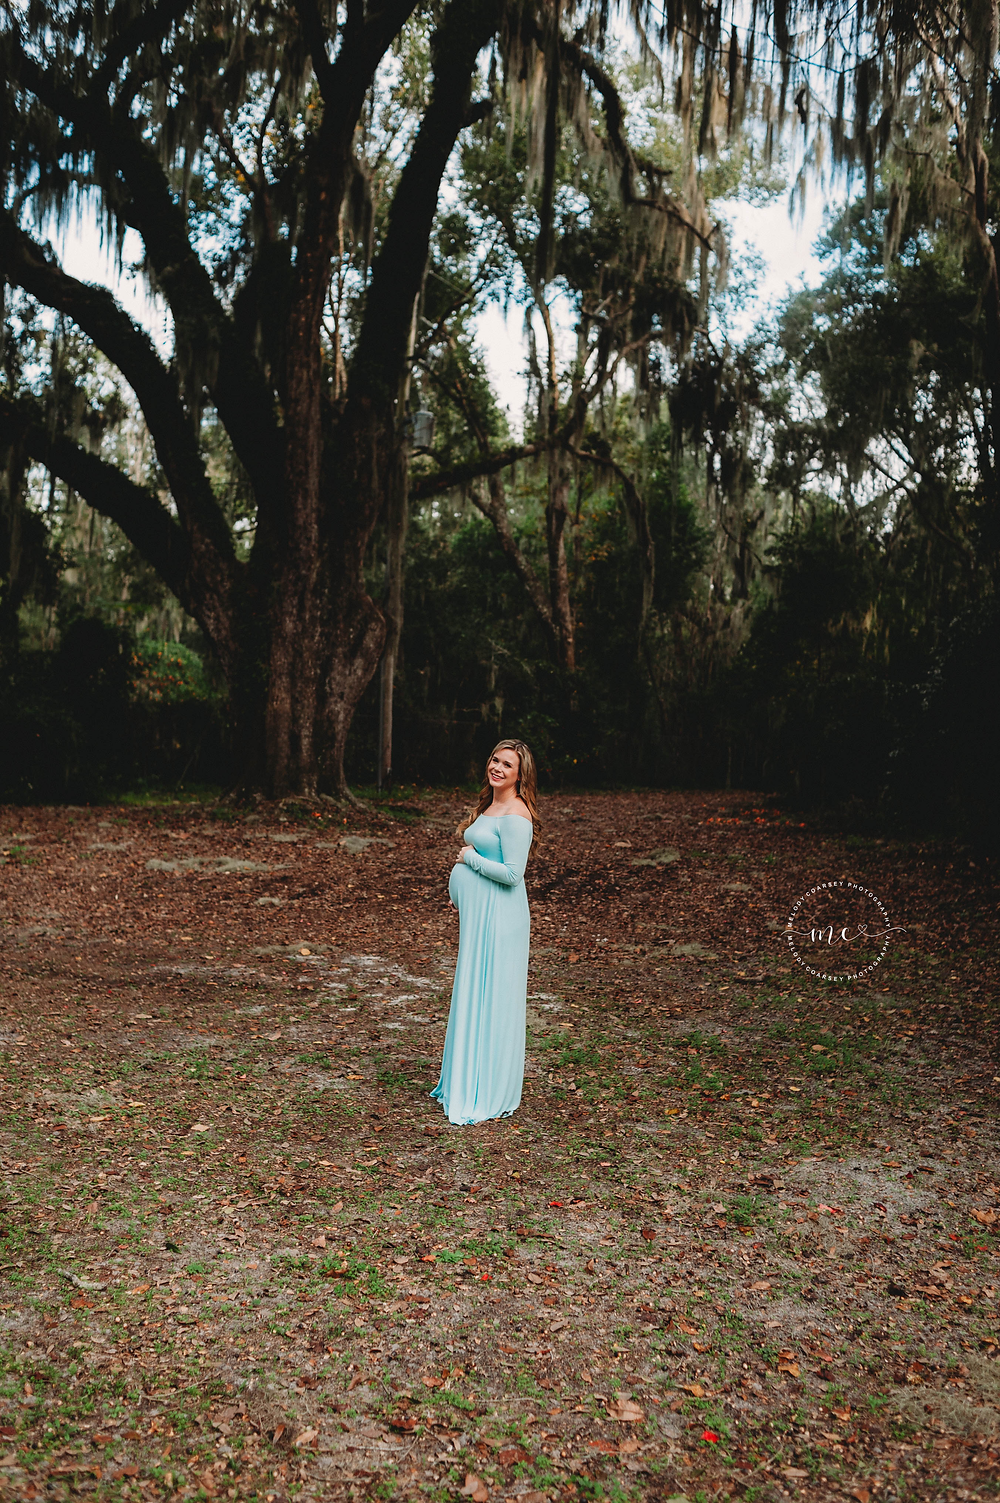 jacksonville maternity portrait photographer